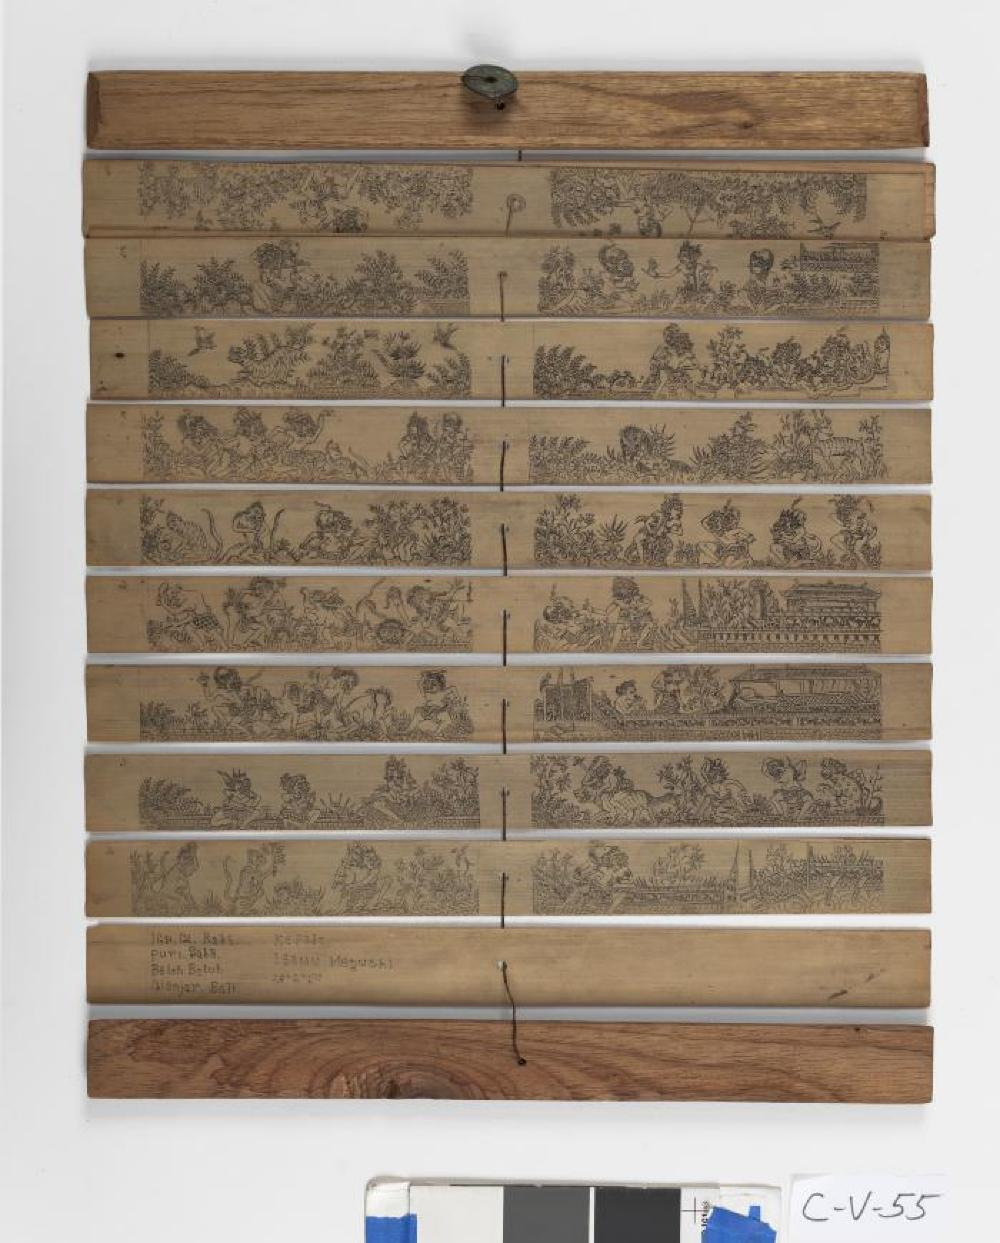 I Gusti Gede Raka (Balinese); Lontar Manuscript (Ramayana); 1950; Palm leaf, wood, ink; 1 x 15 1/2 x 1 1/2 in. (closed); Collection of Isamu Noguchi. (Study Collection; Collectibles, C-V-55)